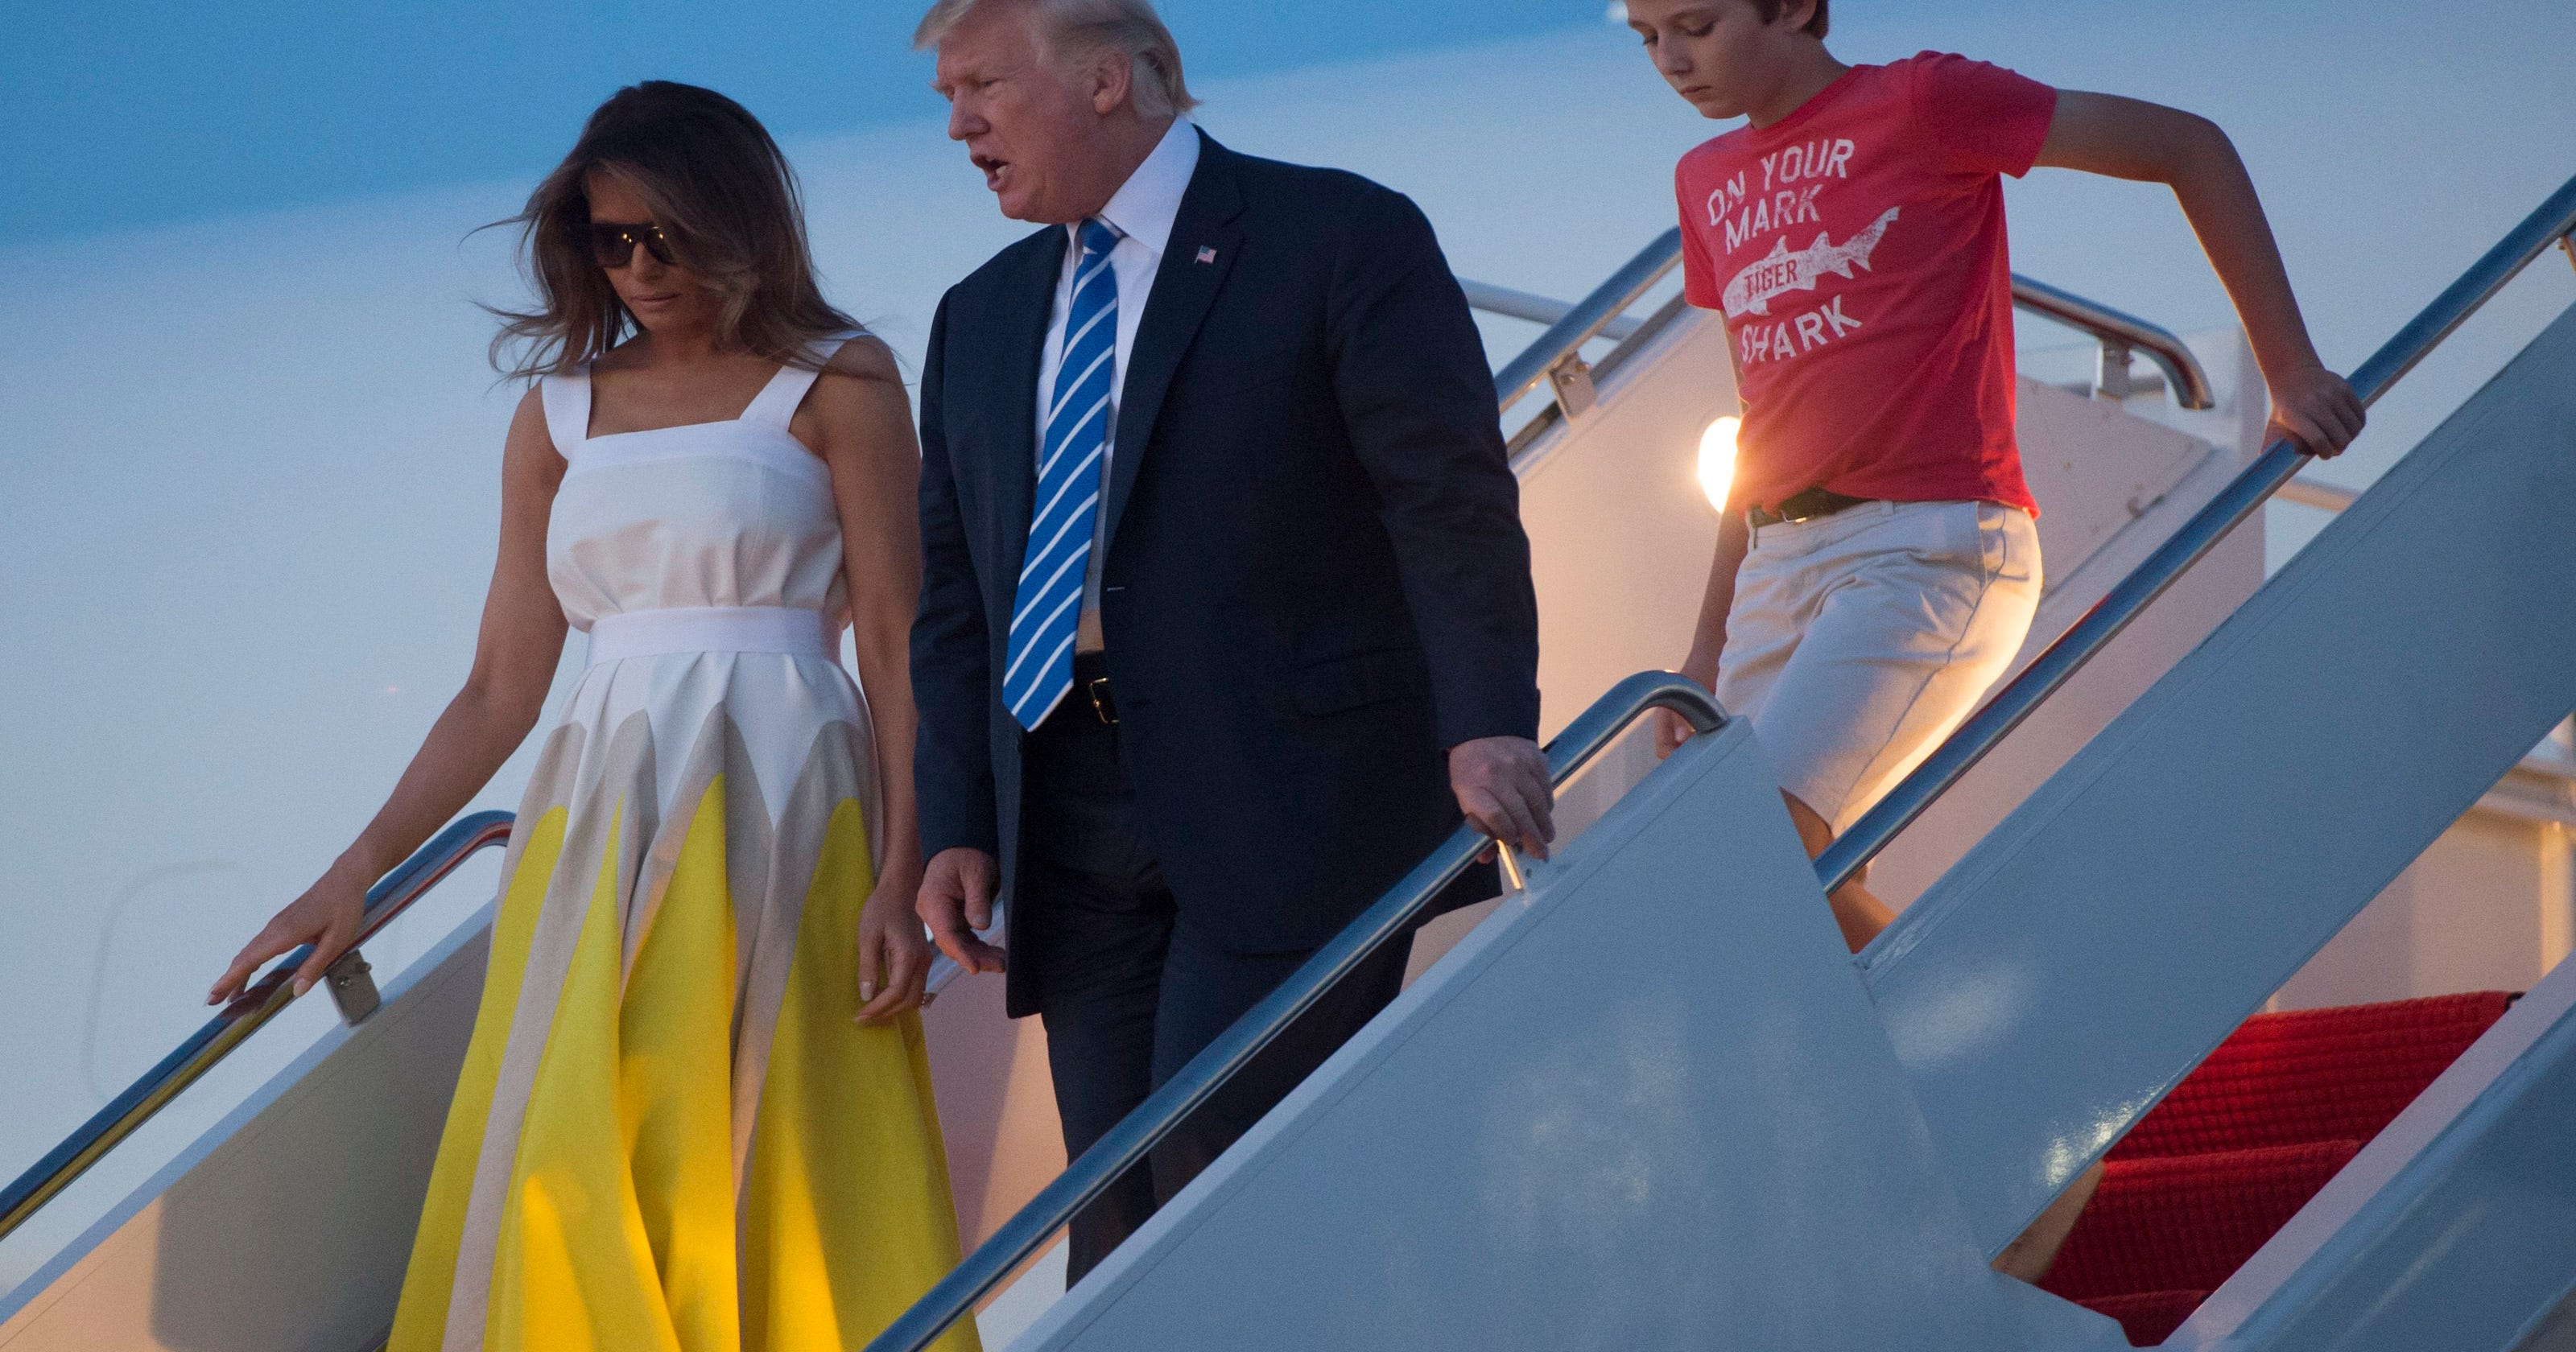 Secret Service spent $137K on golf carts to protect Trump at